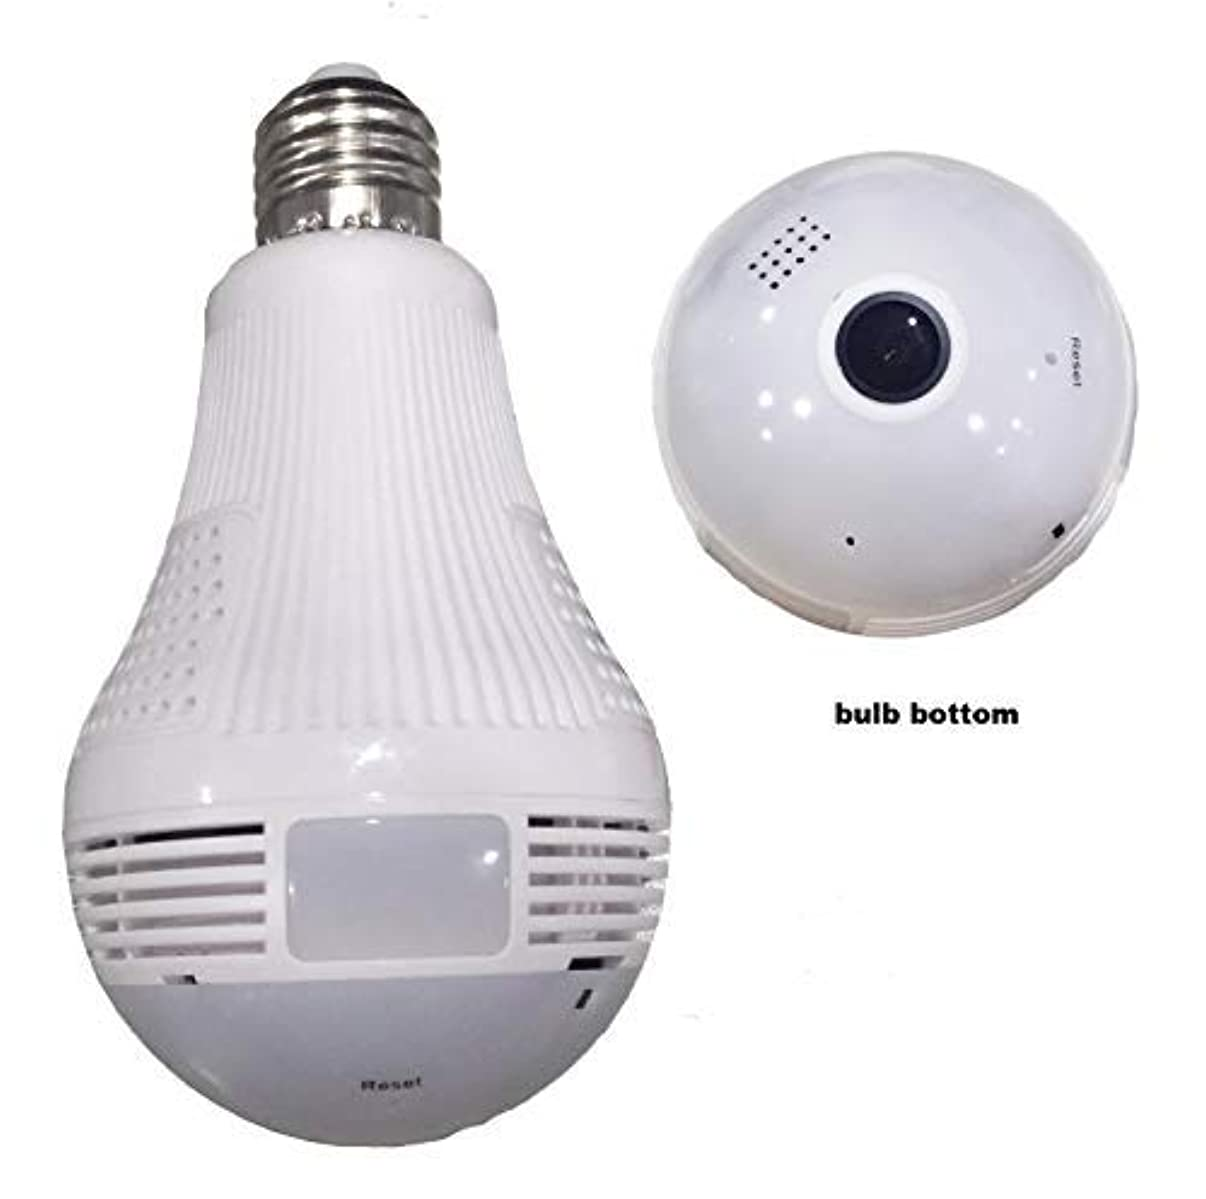 STCBYZ Night Vision 360 Degree WiFi Hidden Light Bulb Camera